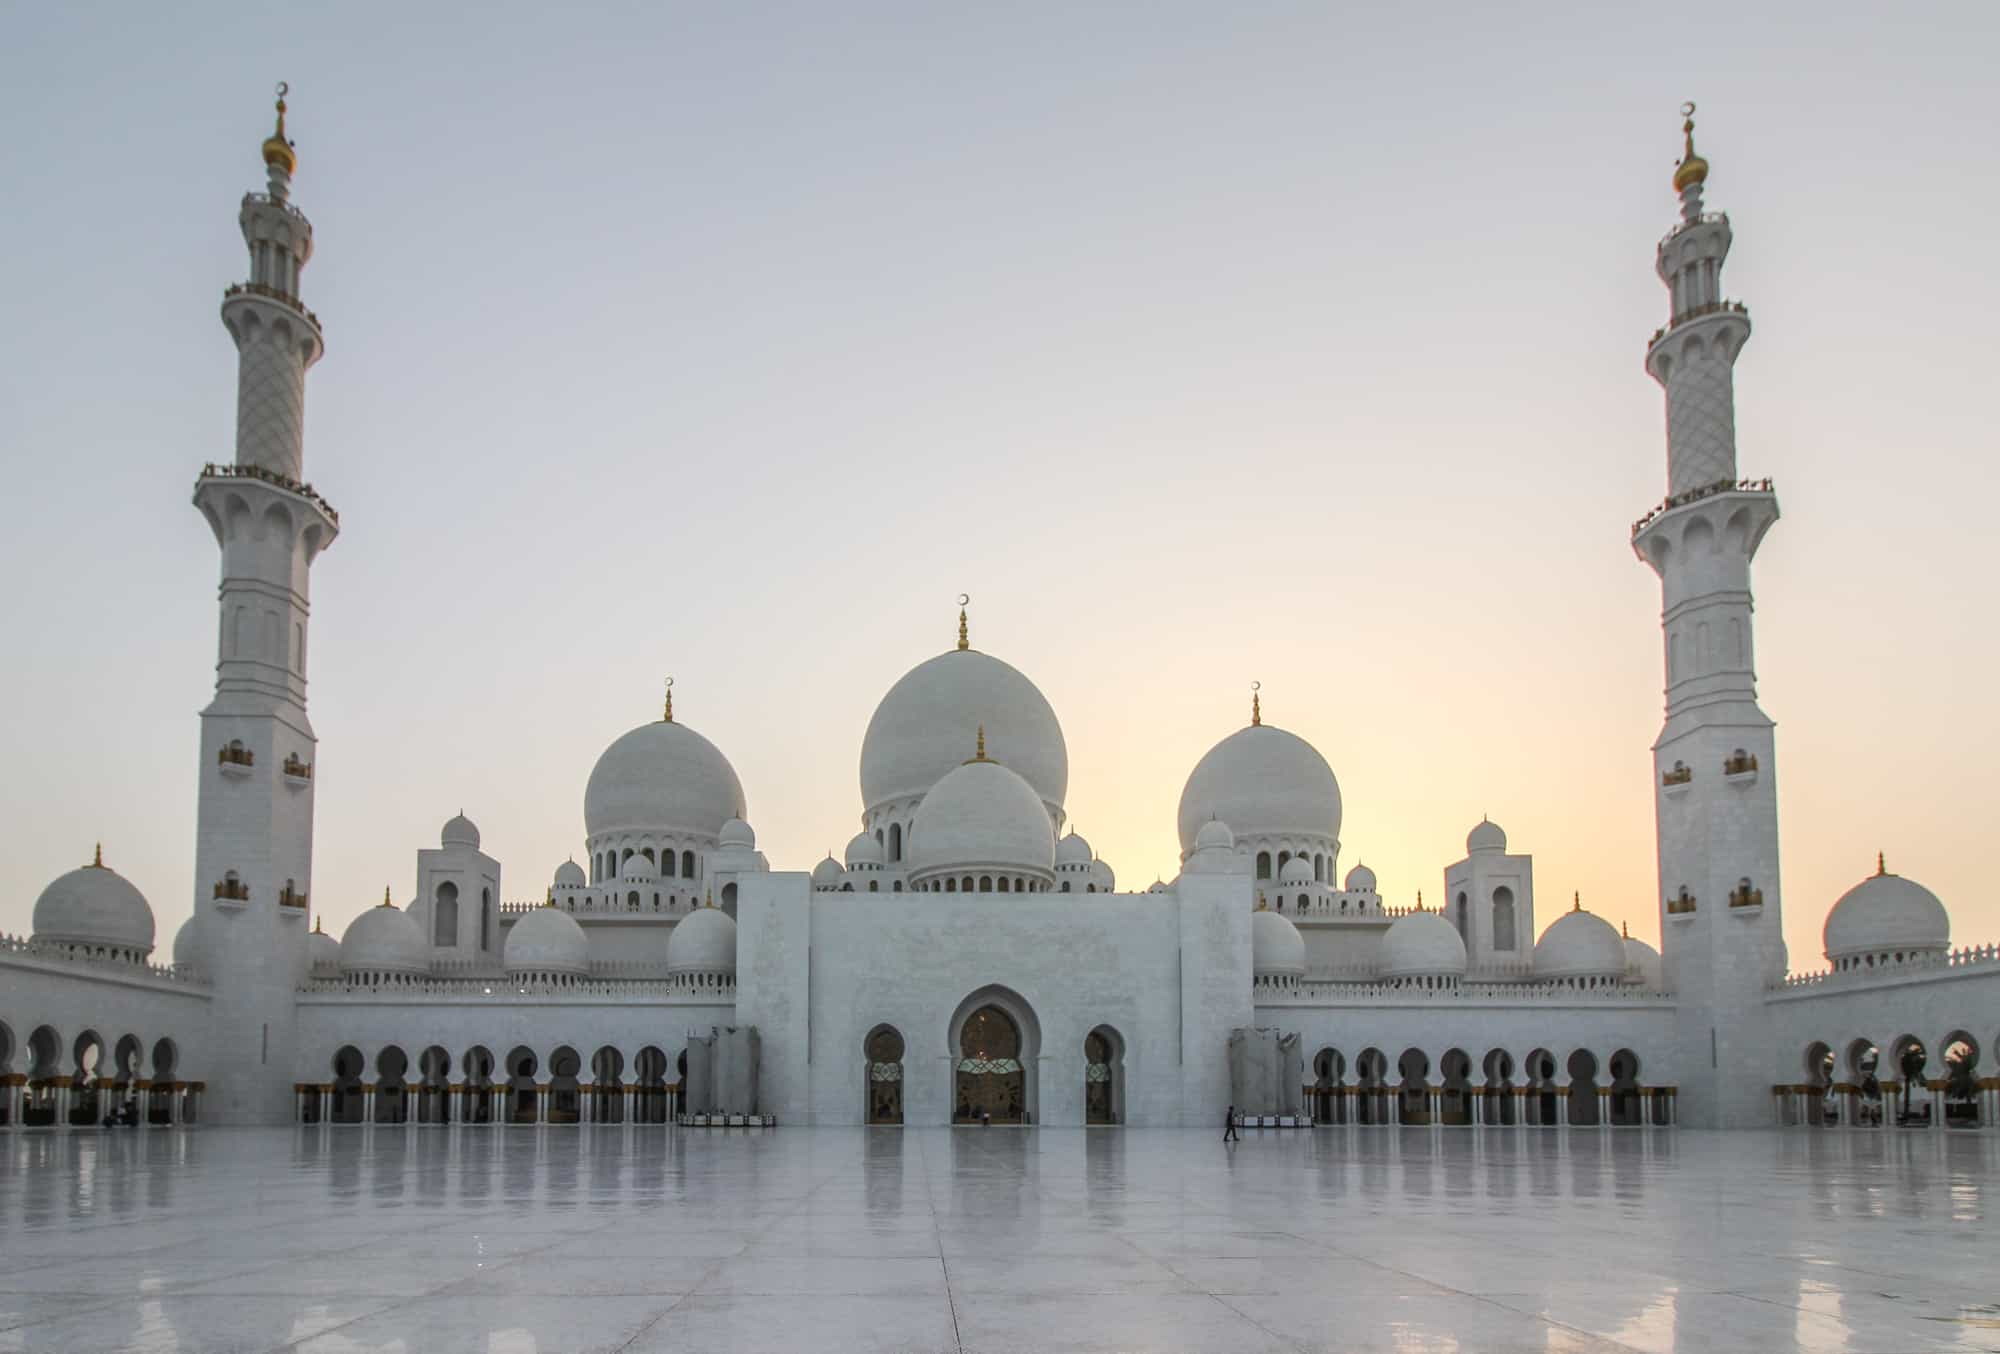 grand mosque frontal after sunset